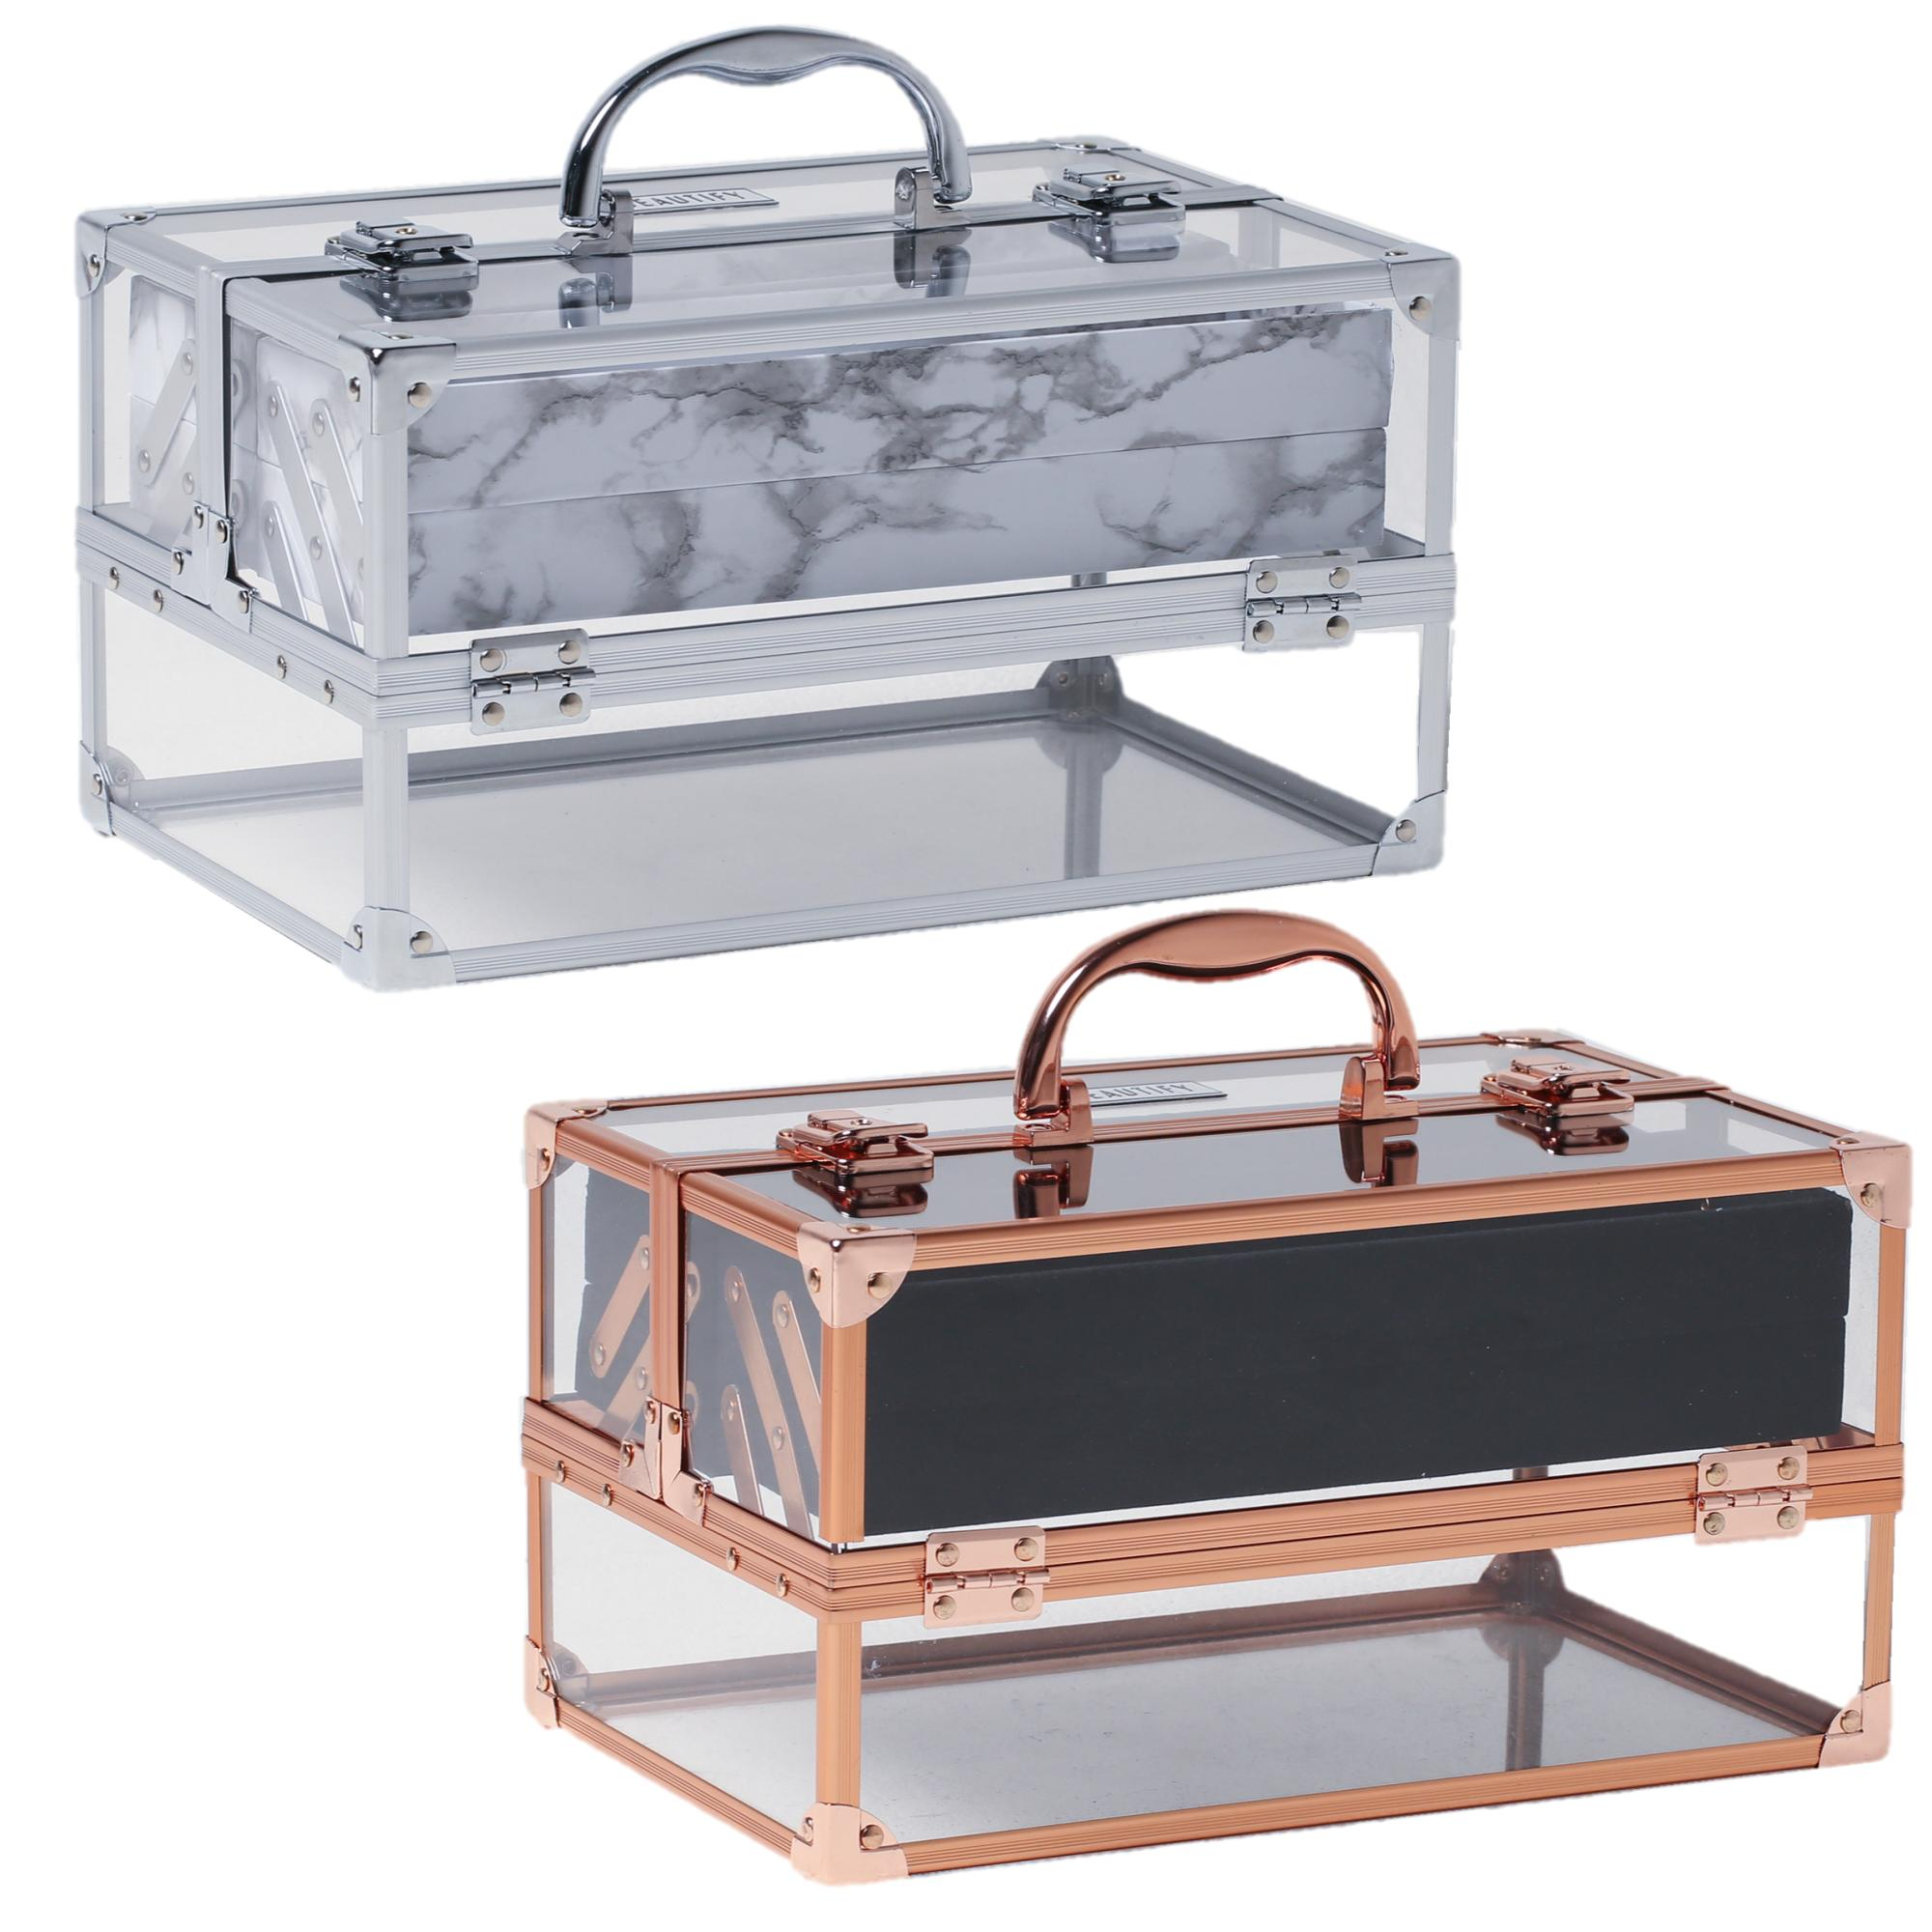 beautify large acrylic vanity make up beauty box cosmetics storage lockable case ebay. Black Bedroom Furniture Sets. Home Design Ideas